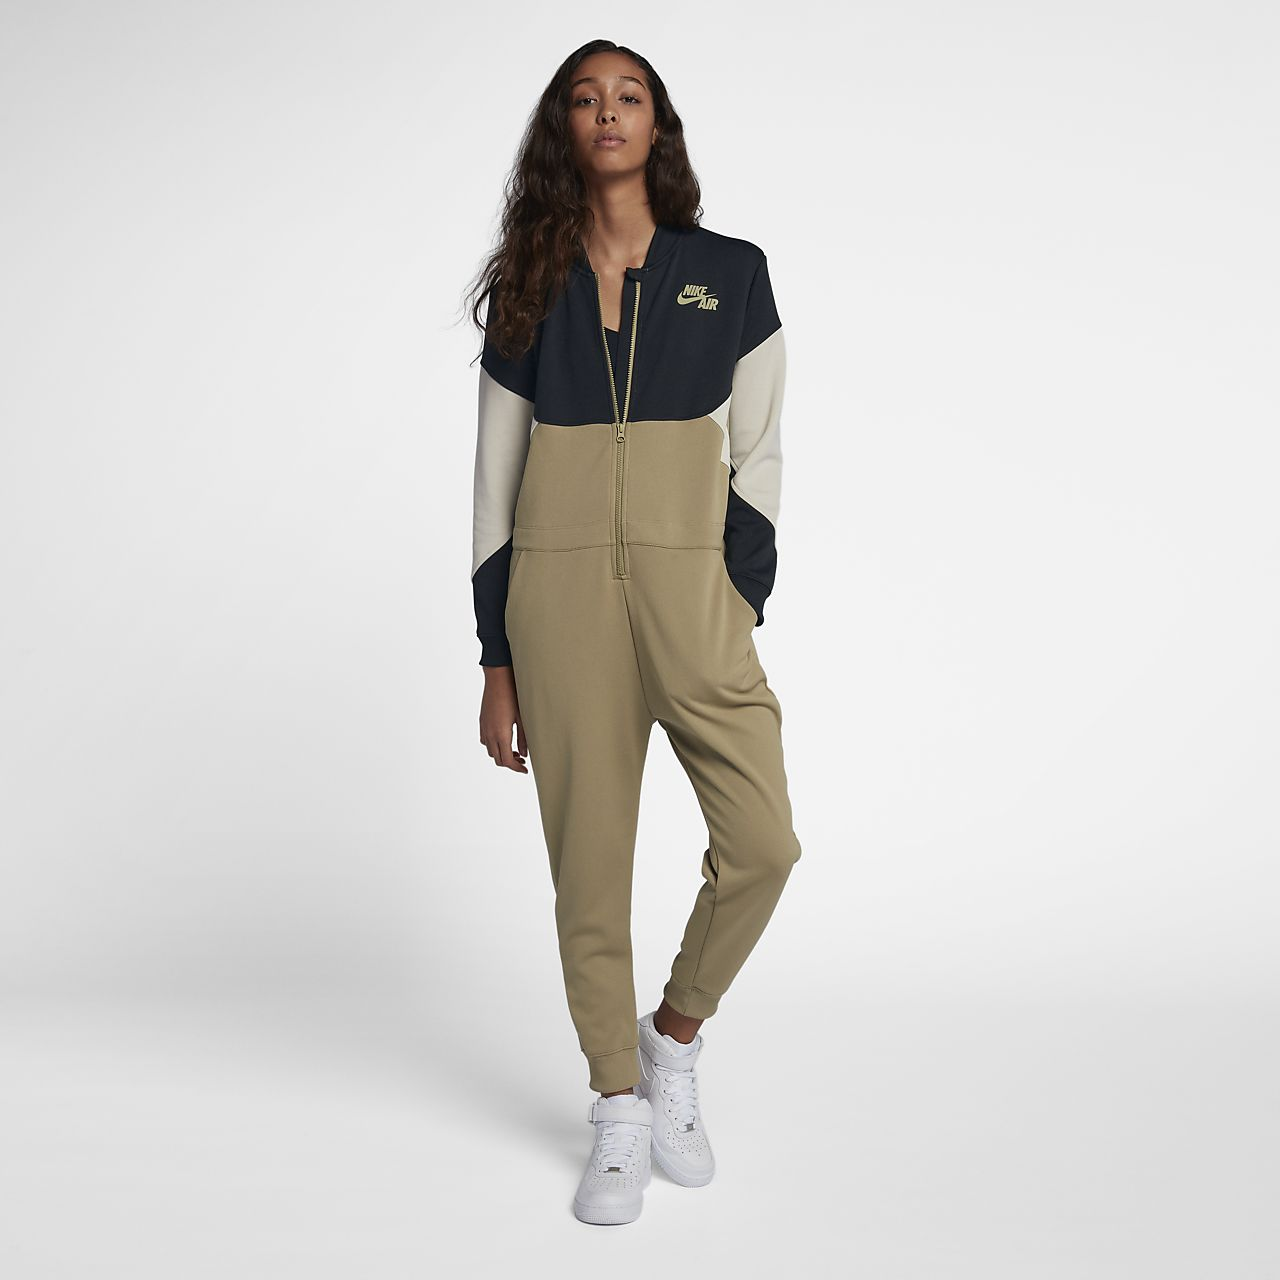 b8ba89183f43 Nike Air Womenu0026 39 s Jumpsuit. Nike.com